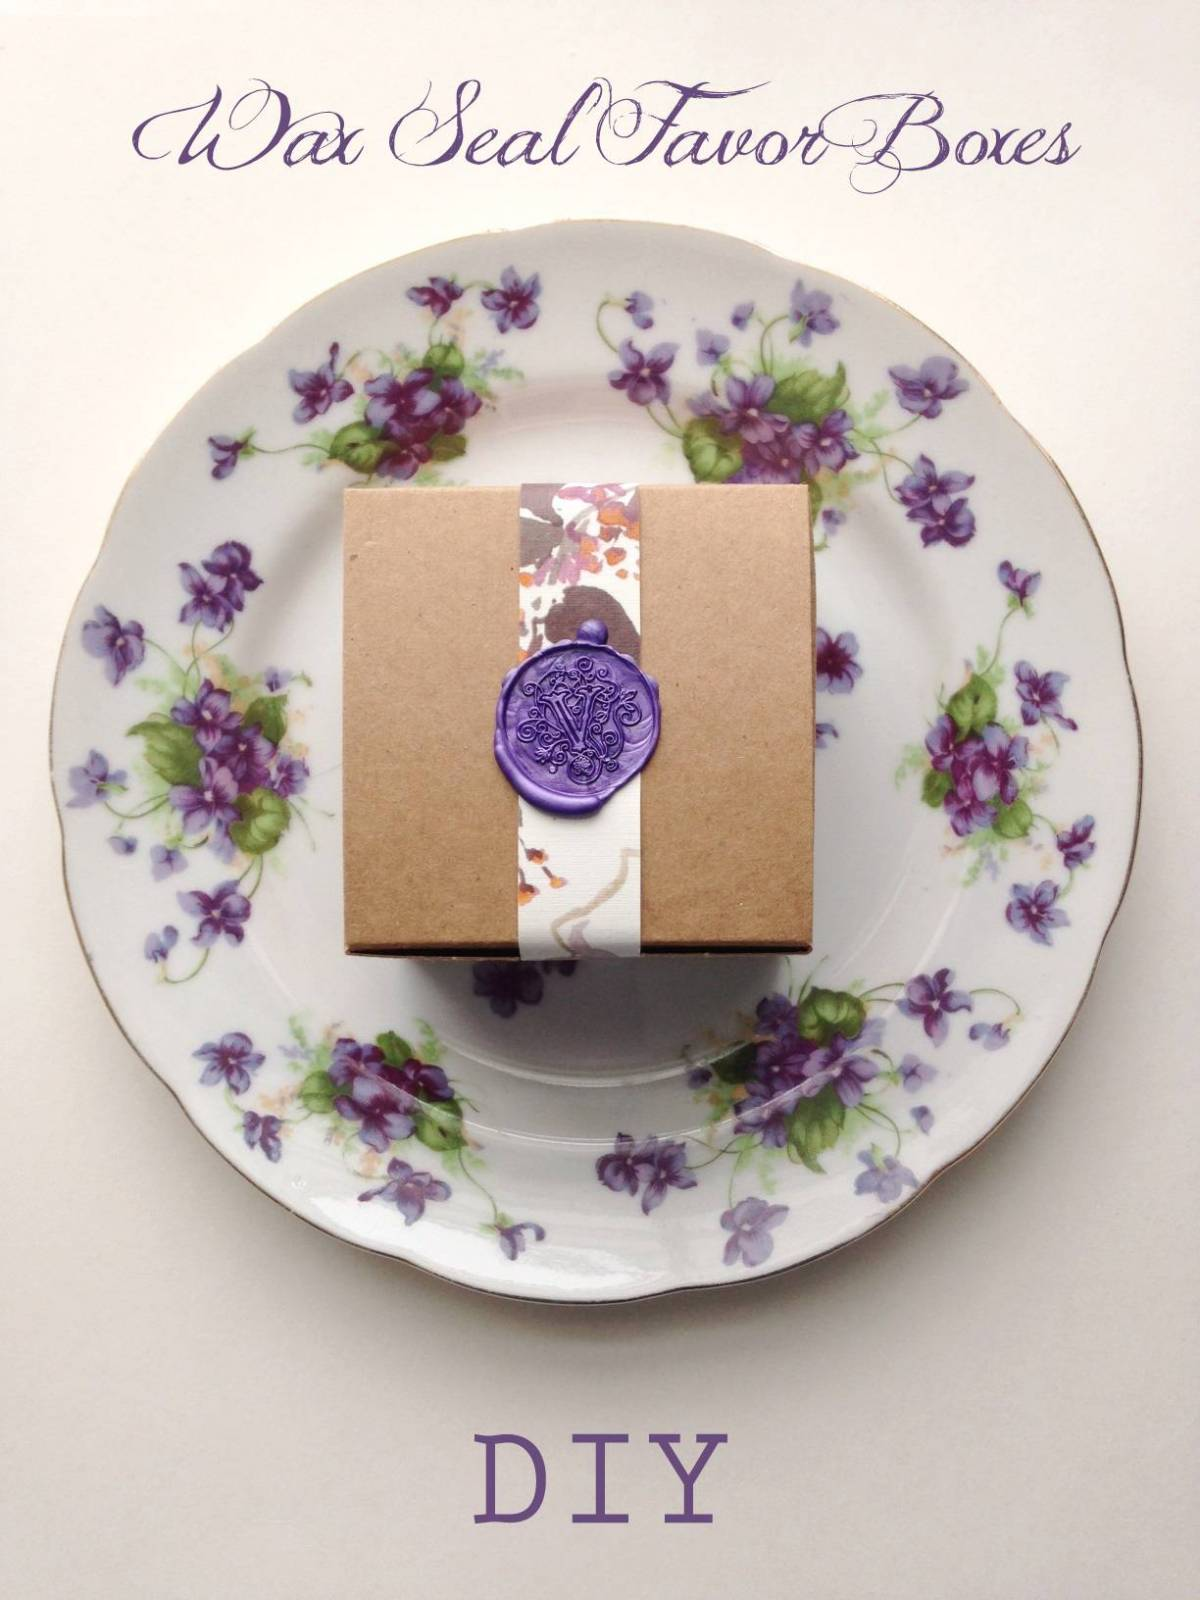 DIY Tutorial: Pretty Wax Seal Favor Boxes